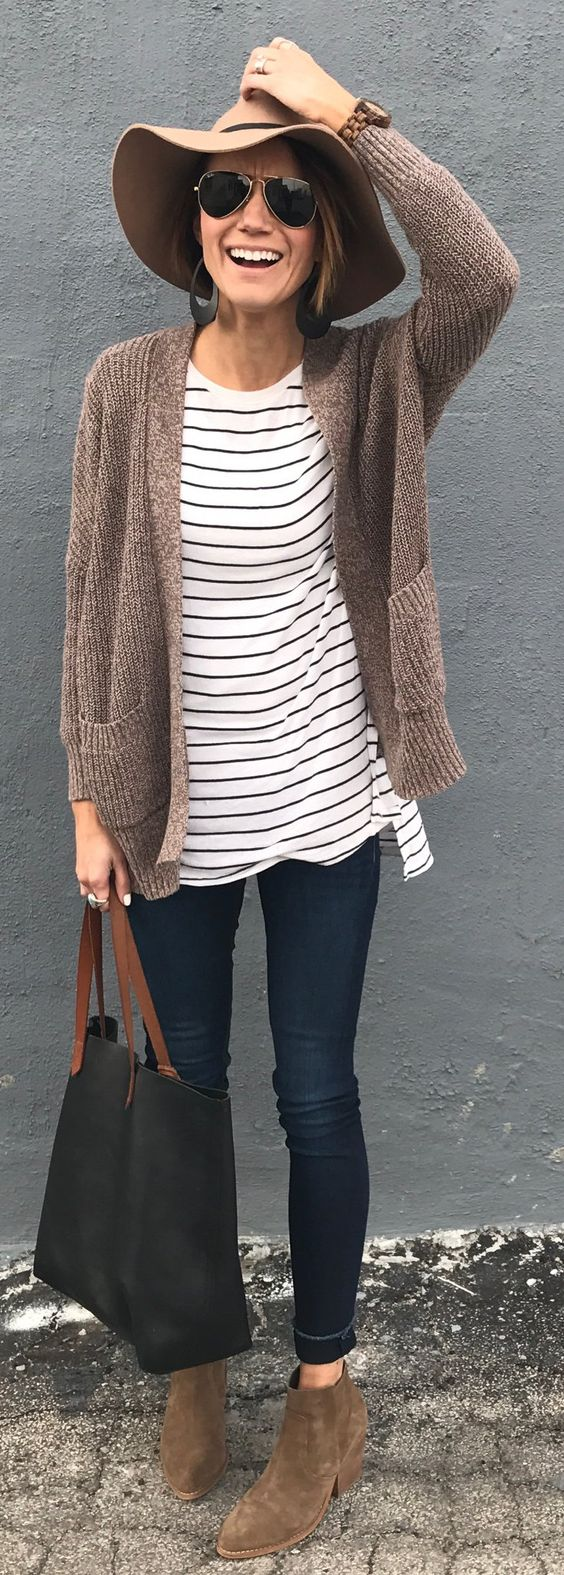 outfit of the day | stripped top + knit cardi + bag + jeans + boots